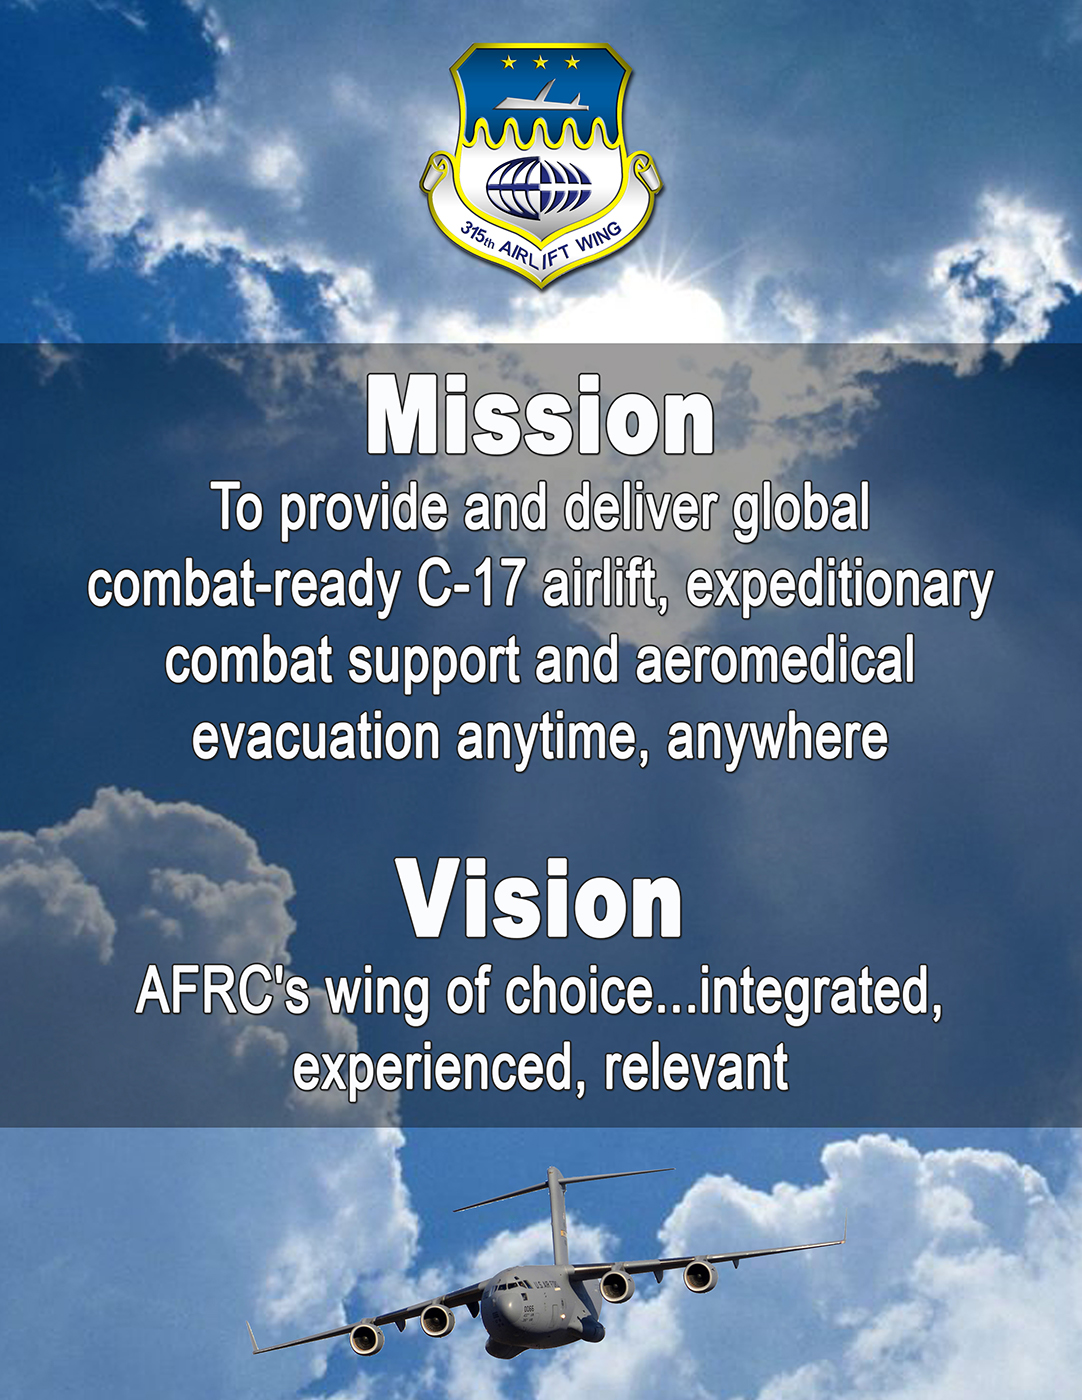 315 AW Wing Mission & Vision